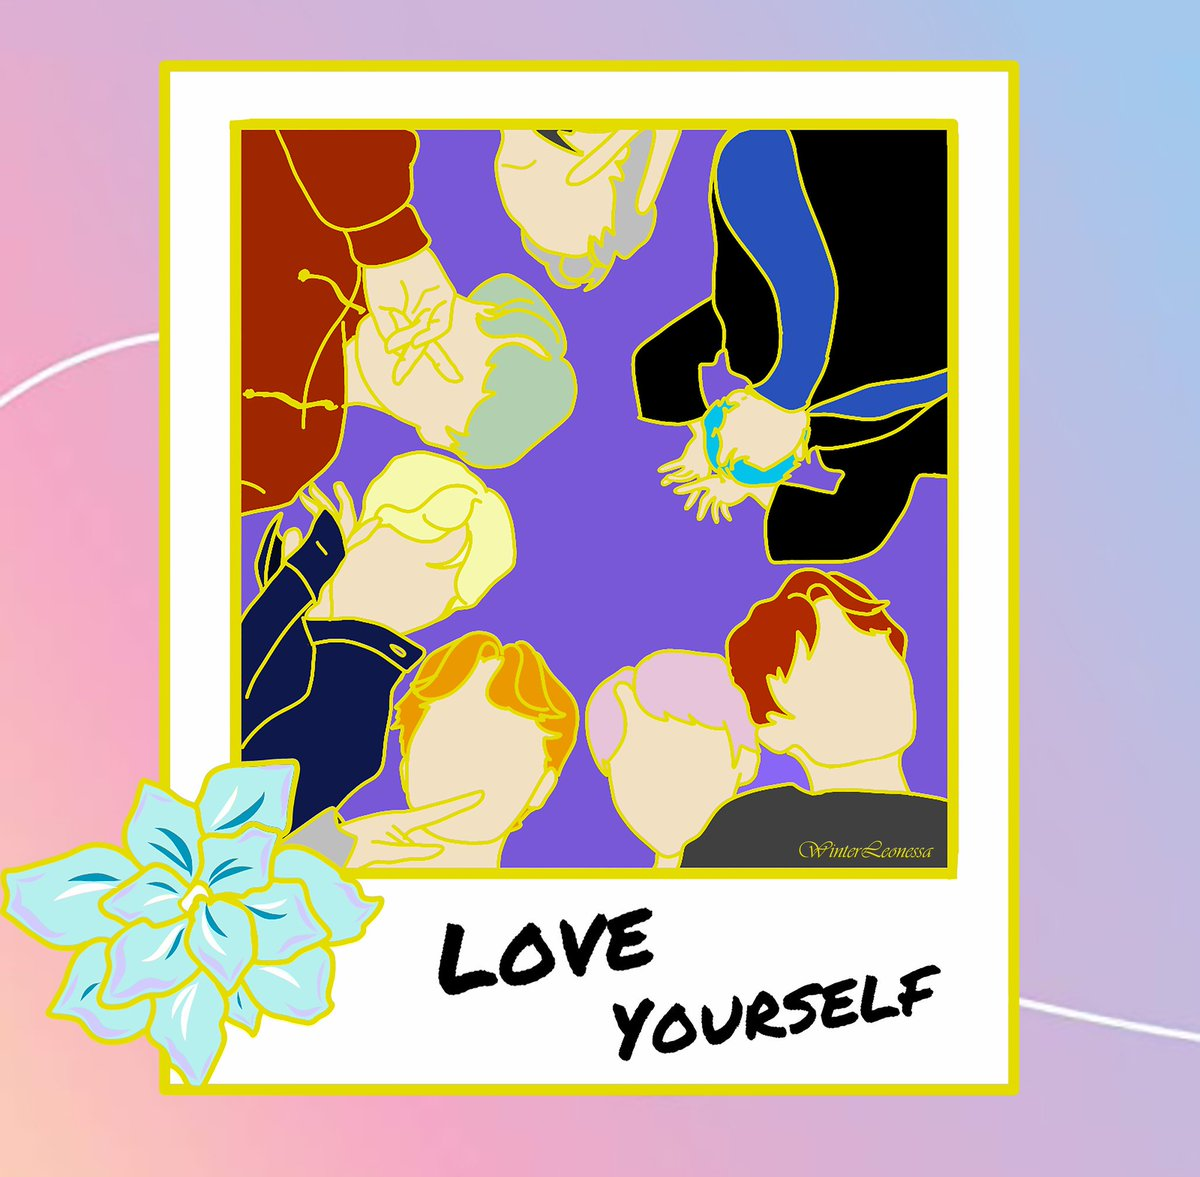 7 of Us 💜 (Wity my favourite hair colours) Dont Repost⚠️ Interest check : 1st pic to become an enamel pin? #6YearsWithBTSOurHome #BTS #btsfanart #btsenamelpins #JIMIN #BTSFESTA2019 #JUNGKOOK #JIN #RM #SUGA #JHOPE #Taehyung #방탄소년단 #LoveYourSelf